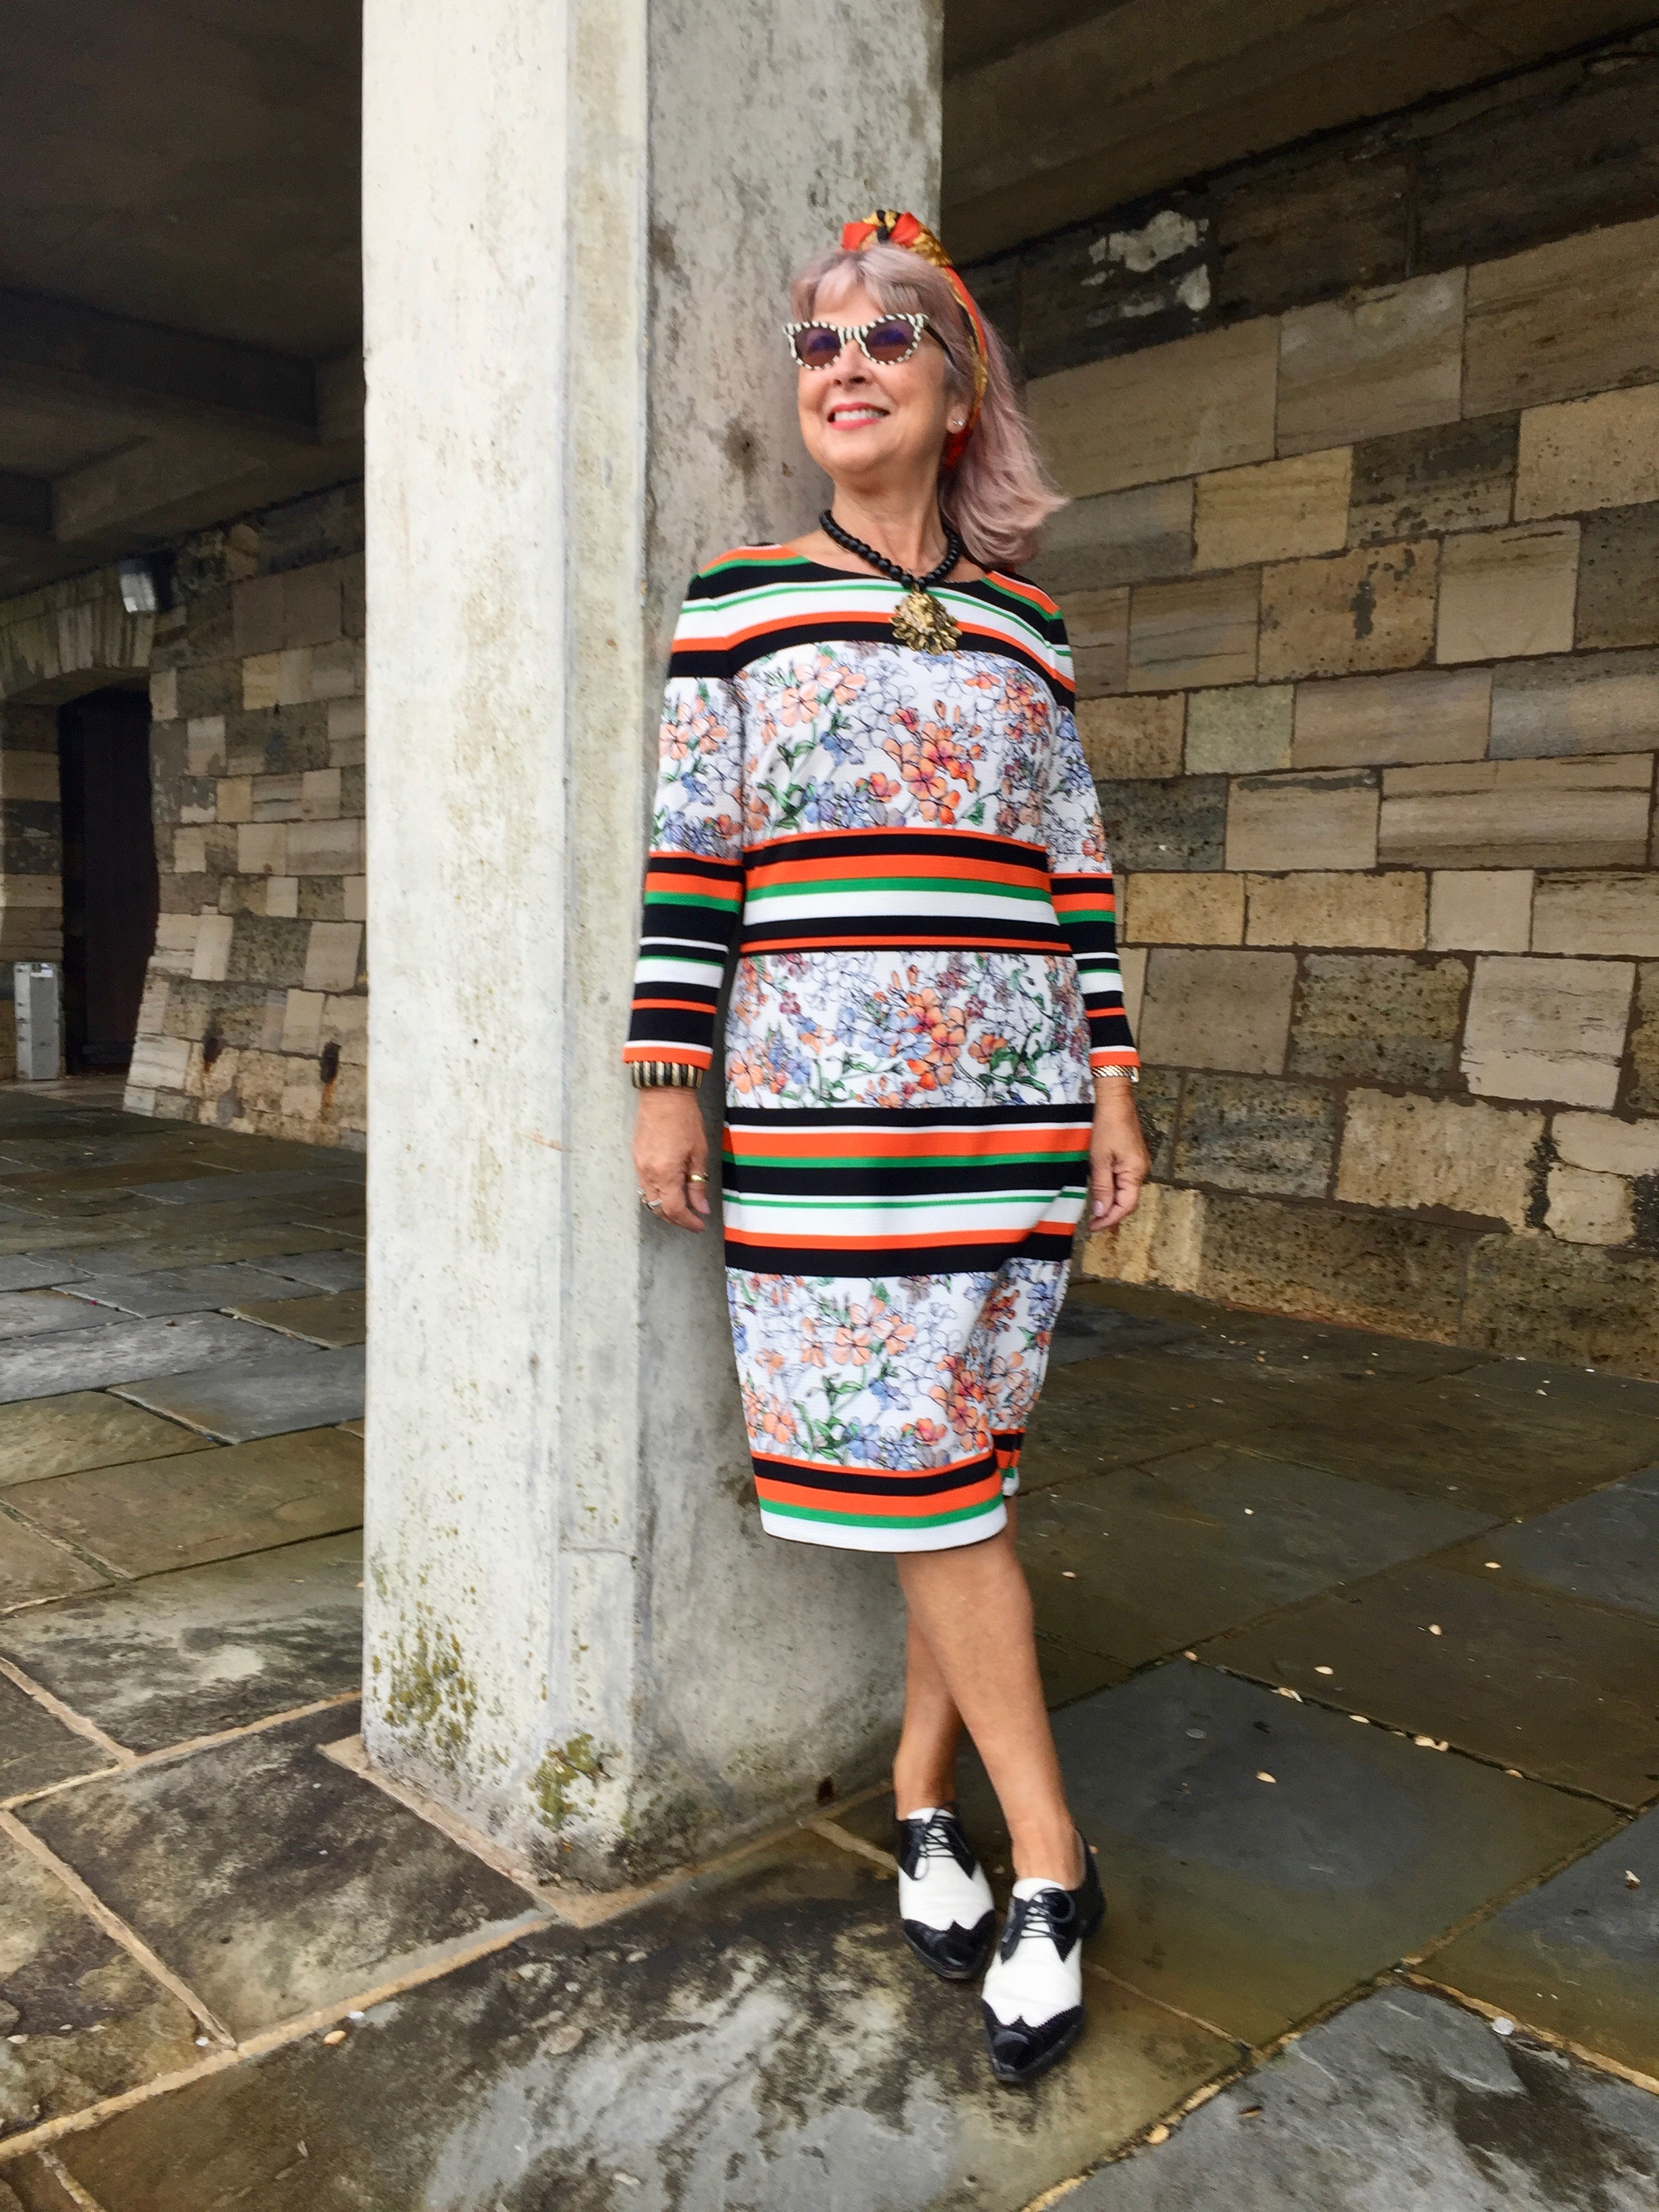 Bargain 80s dress with old Armani shoes, vintage sunnies & headscarf.